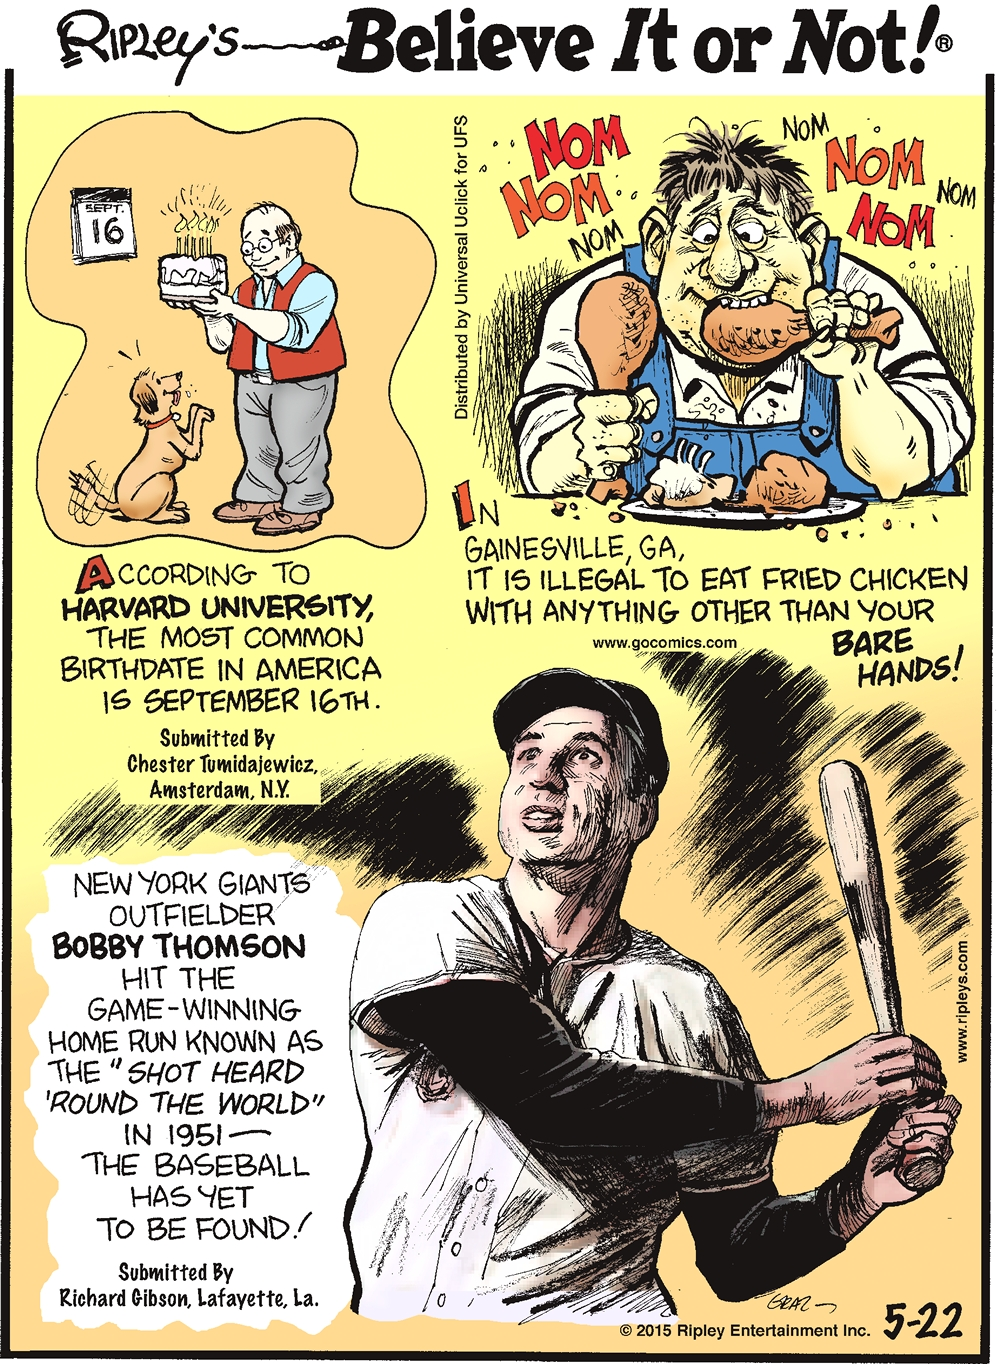 Not The Baseball Pitcher: Ripley's Believe It Or Not